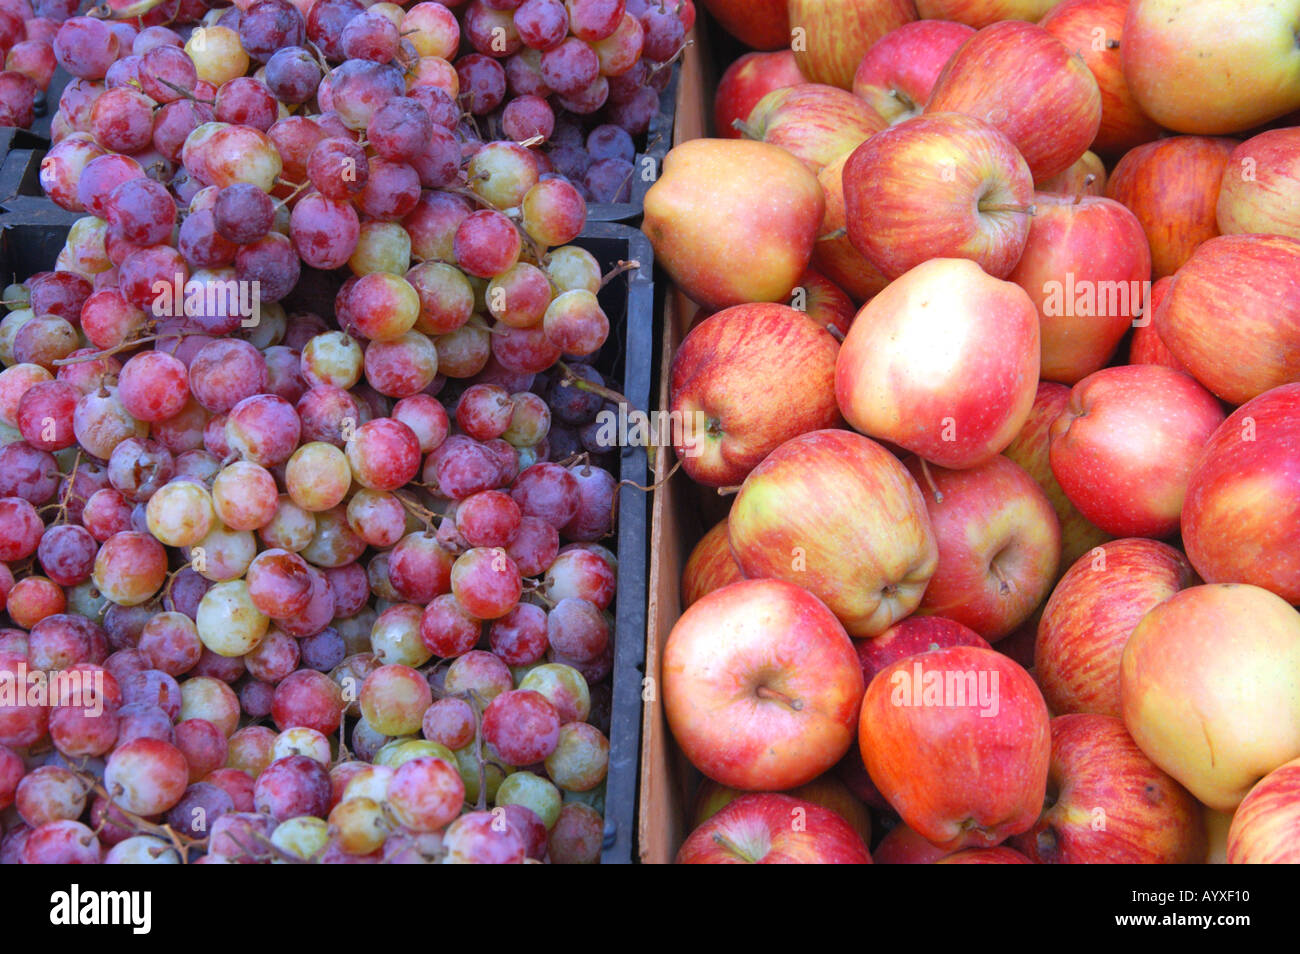 6b59312e079d1d Red Grapes and Apples in Fruit Market Amman Jordan Stock Photo ...